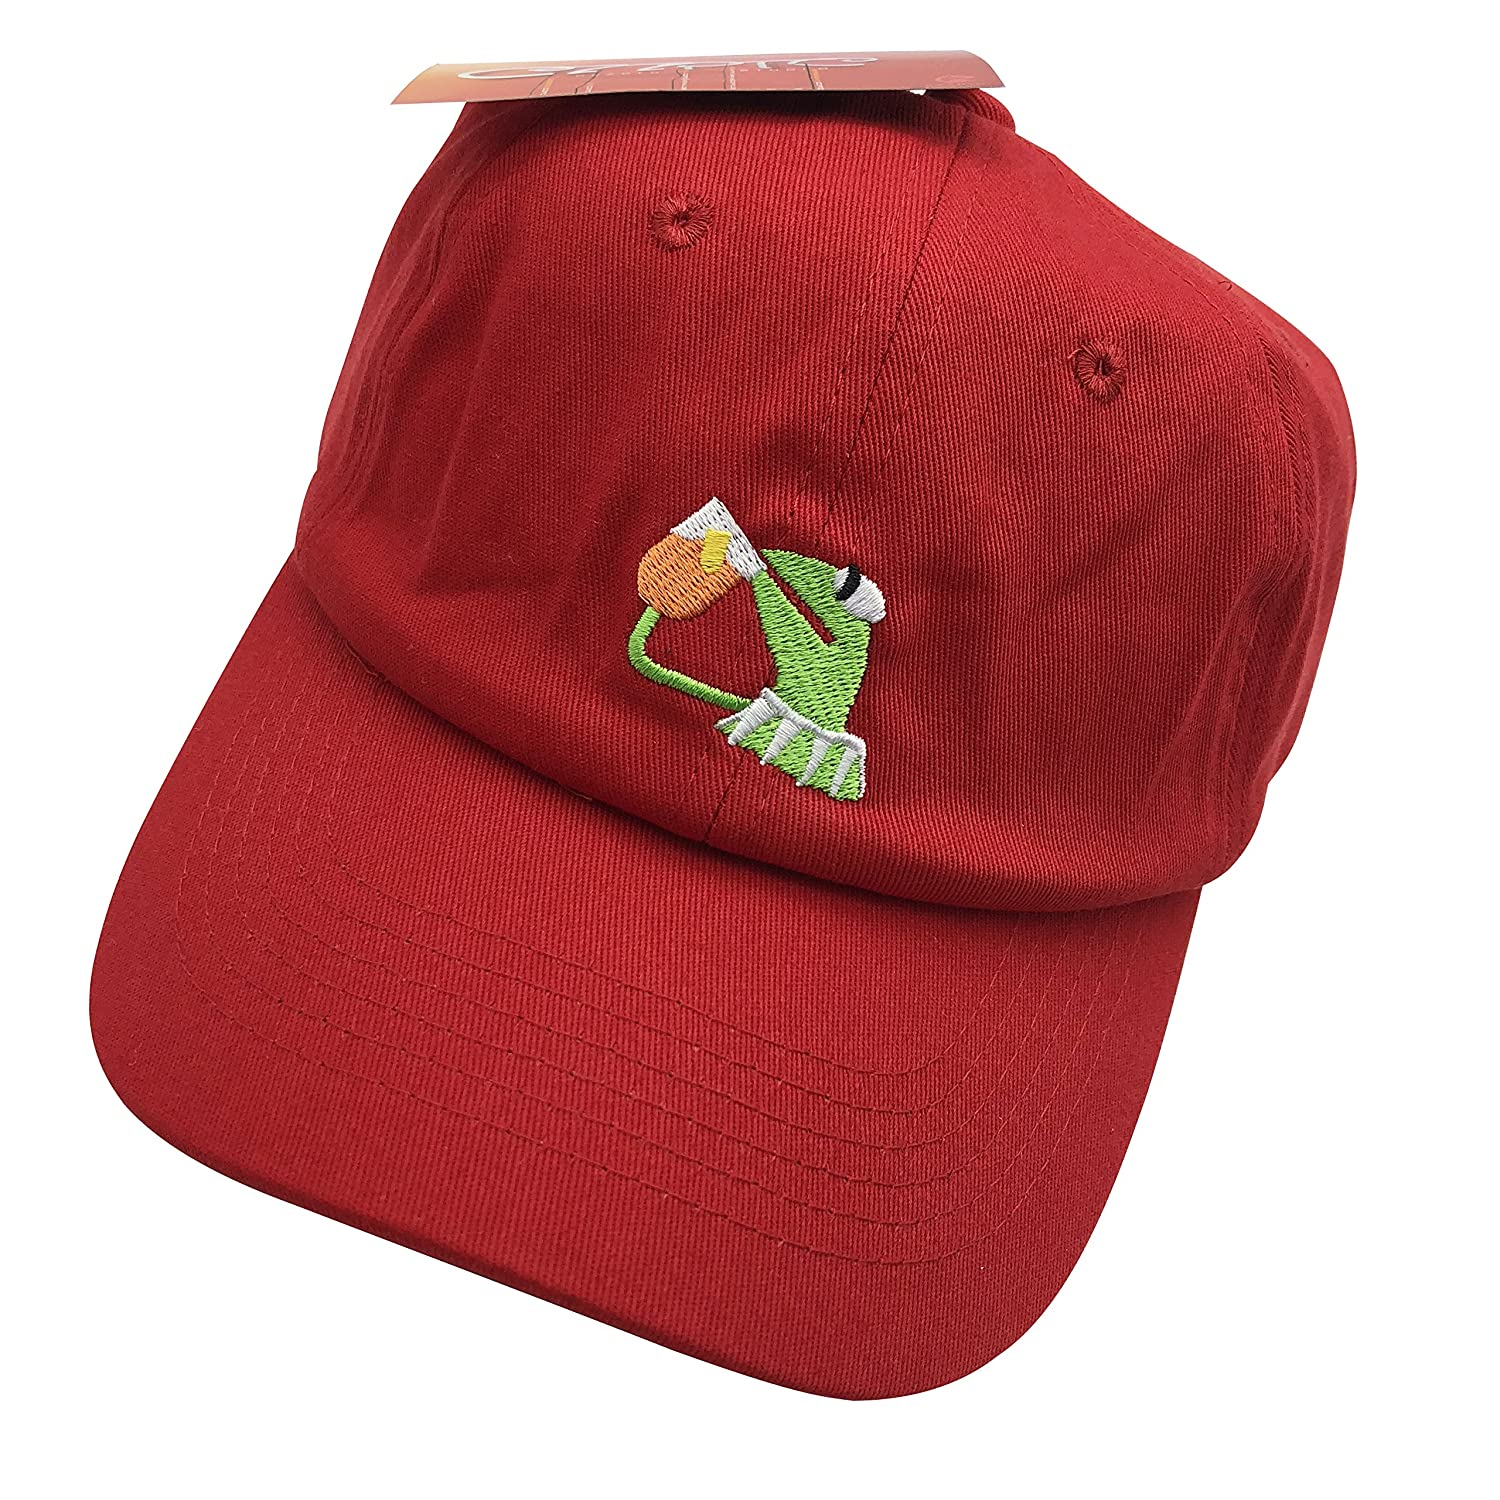 308d1f1100e Kermit The Frog Dad Hat Baseball Cap Sipping Sips Drinking Tea Champion  Adjustable Black 7lop104a